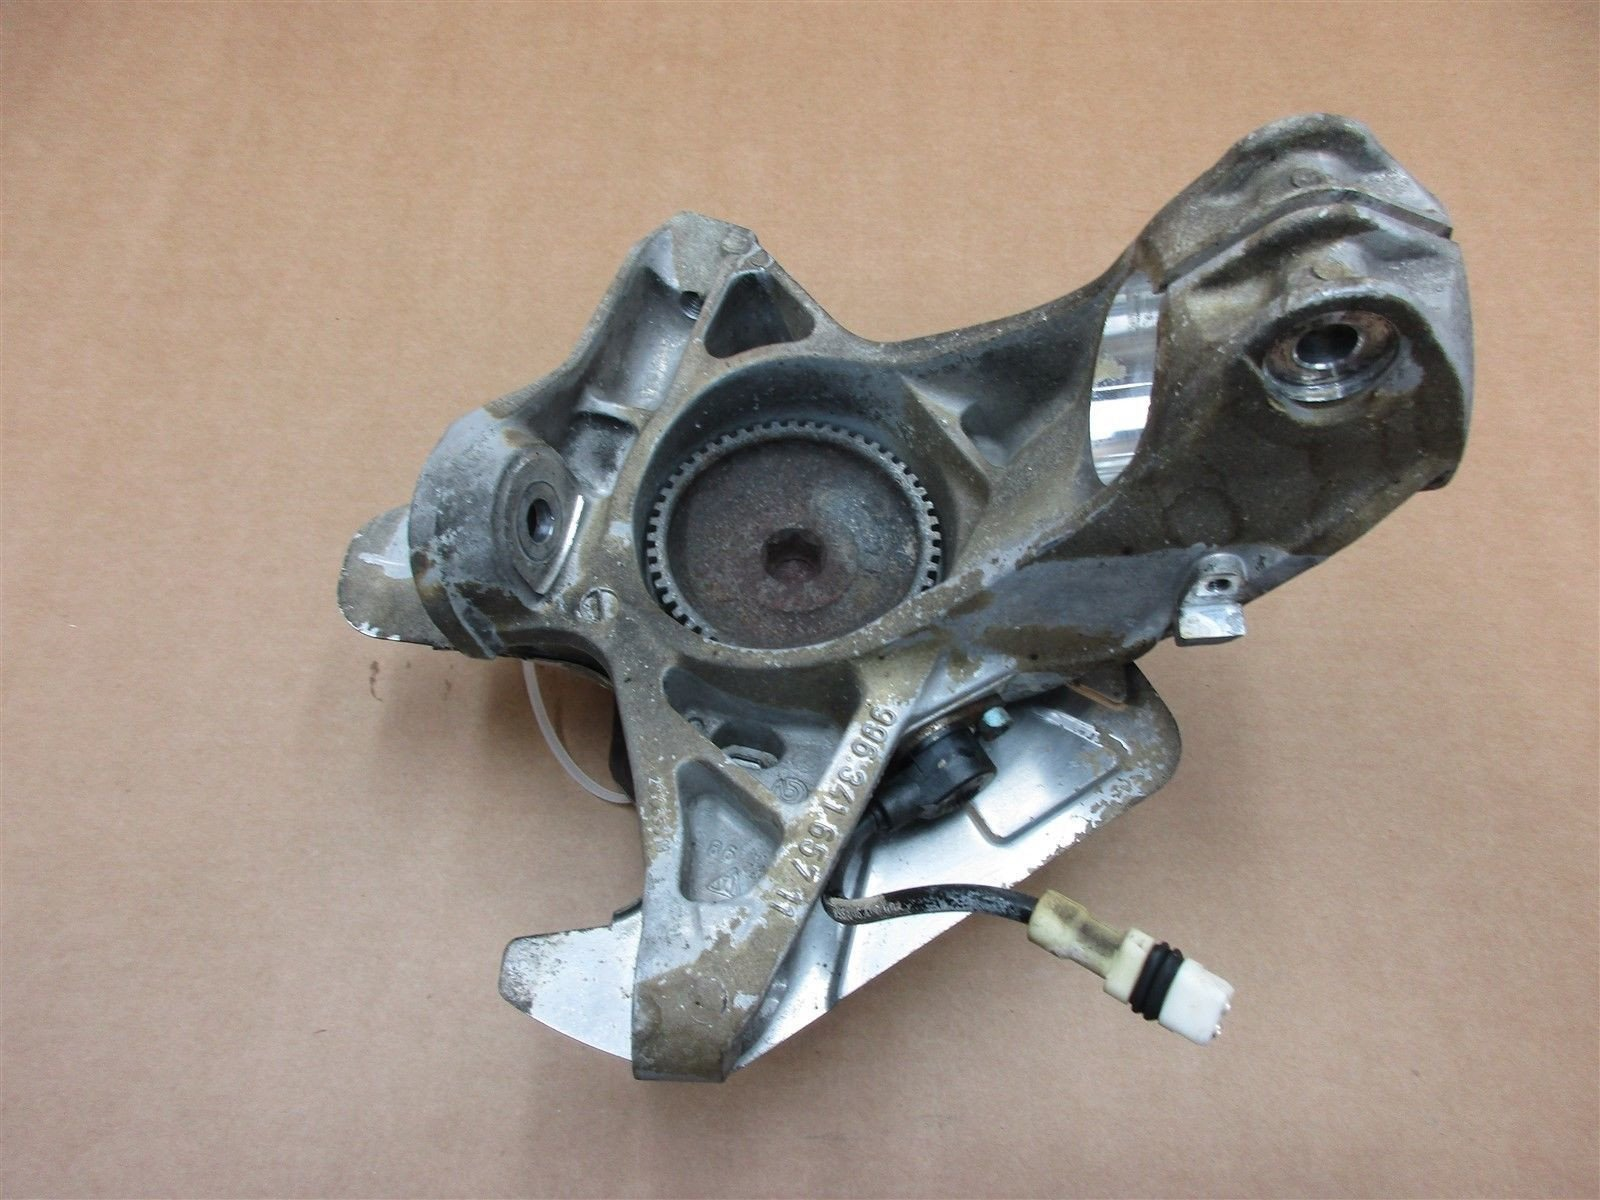 99 Boxster RWD Porsche 986 L FRONT HUB + STEERING KNUCKLE 99634165711 27,759